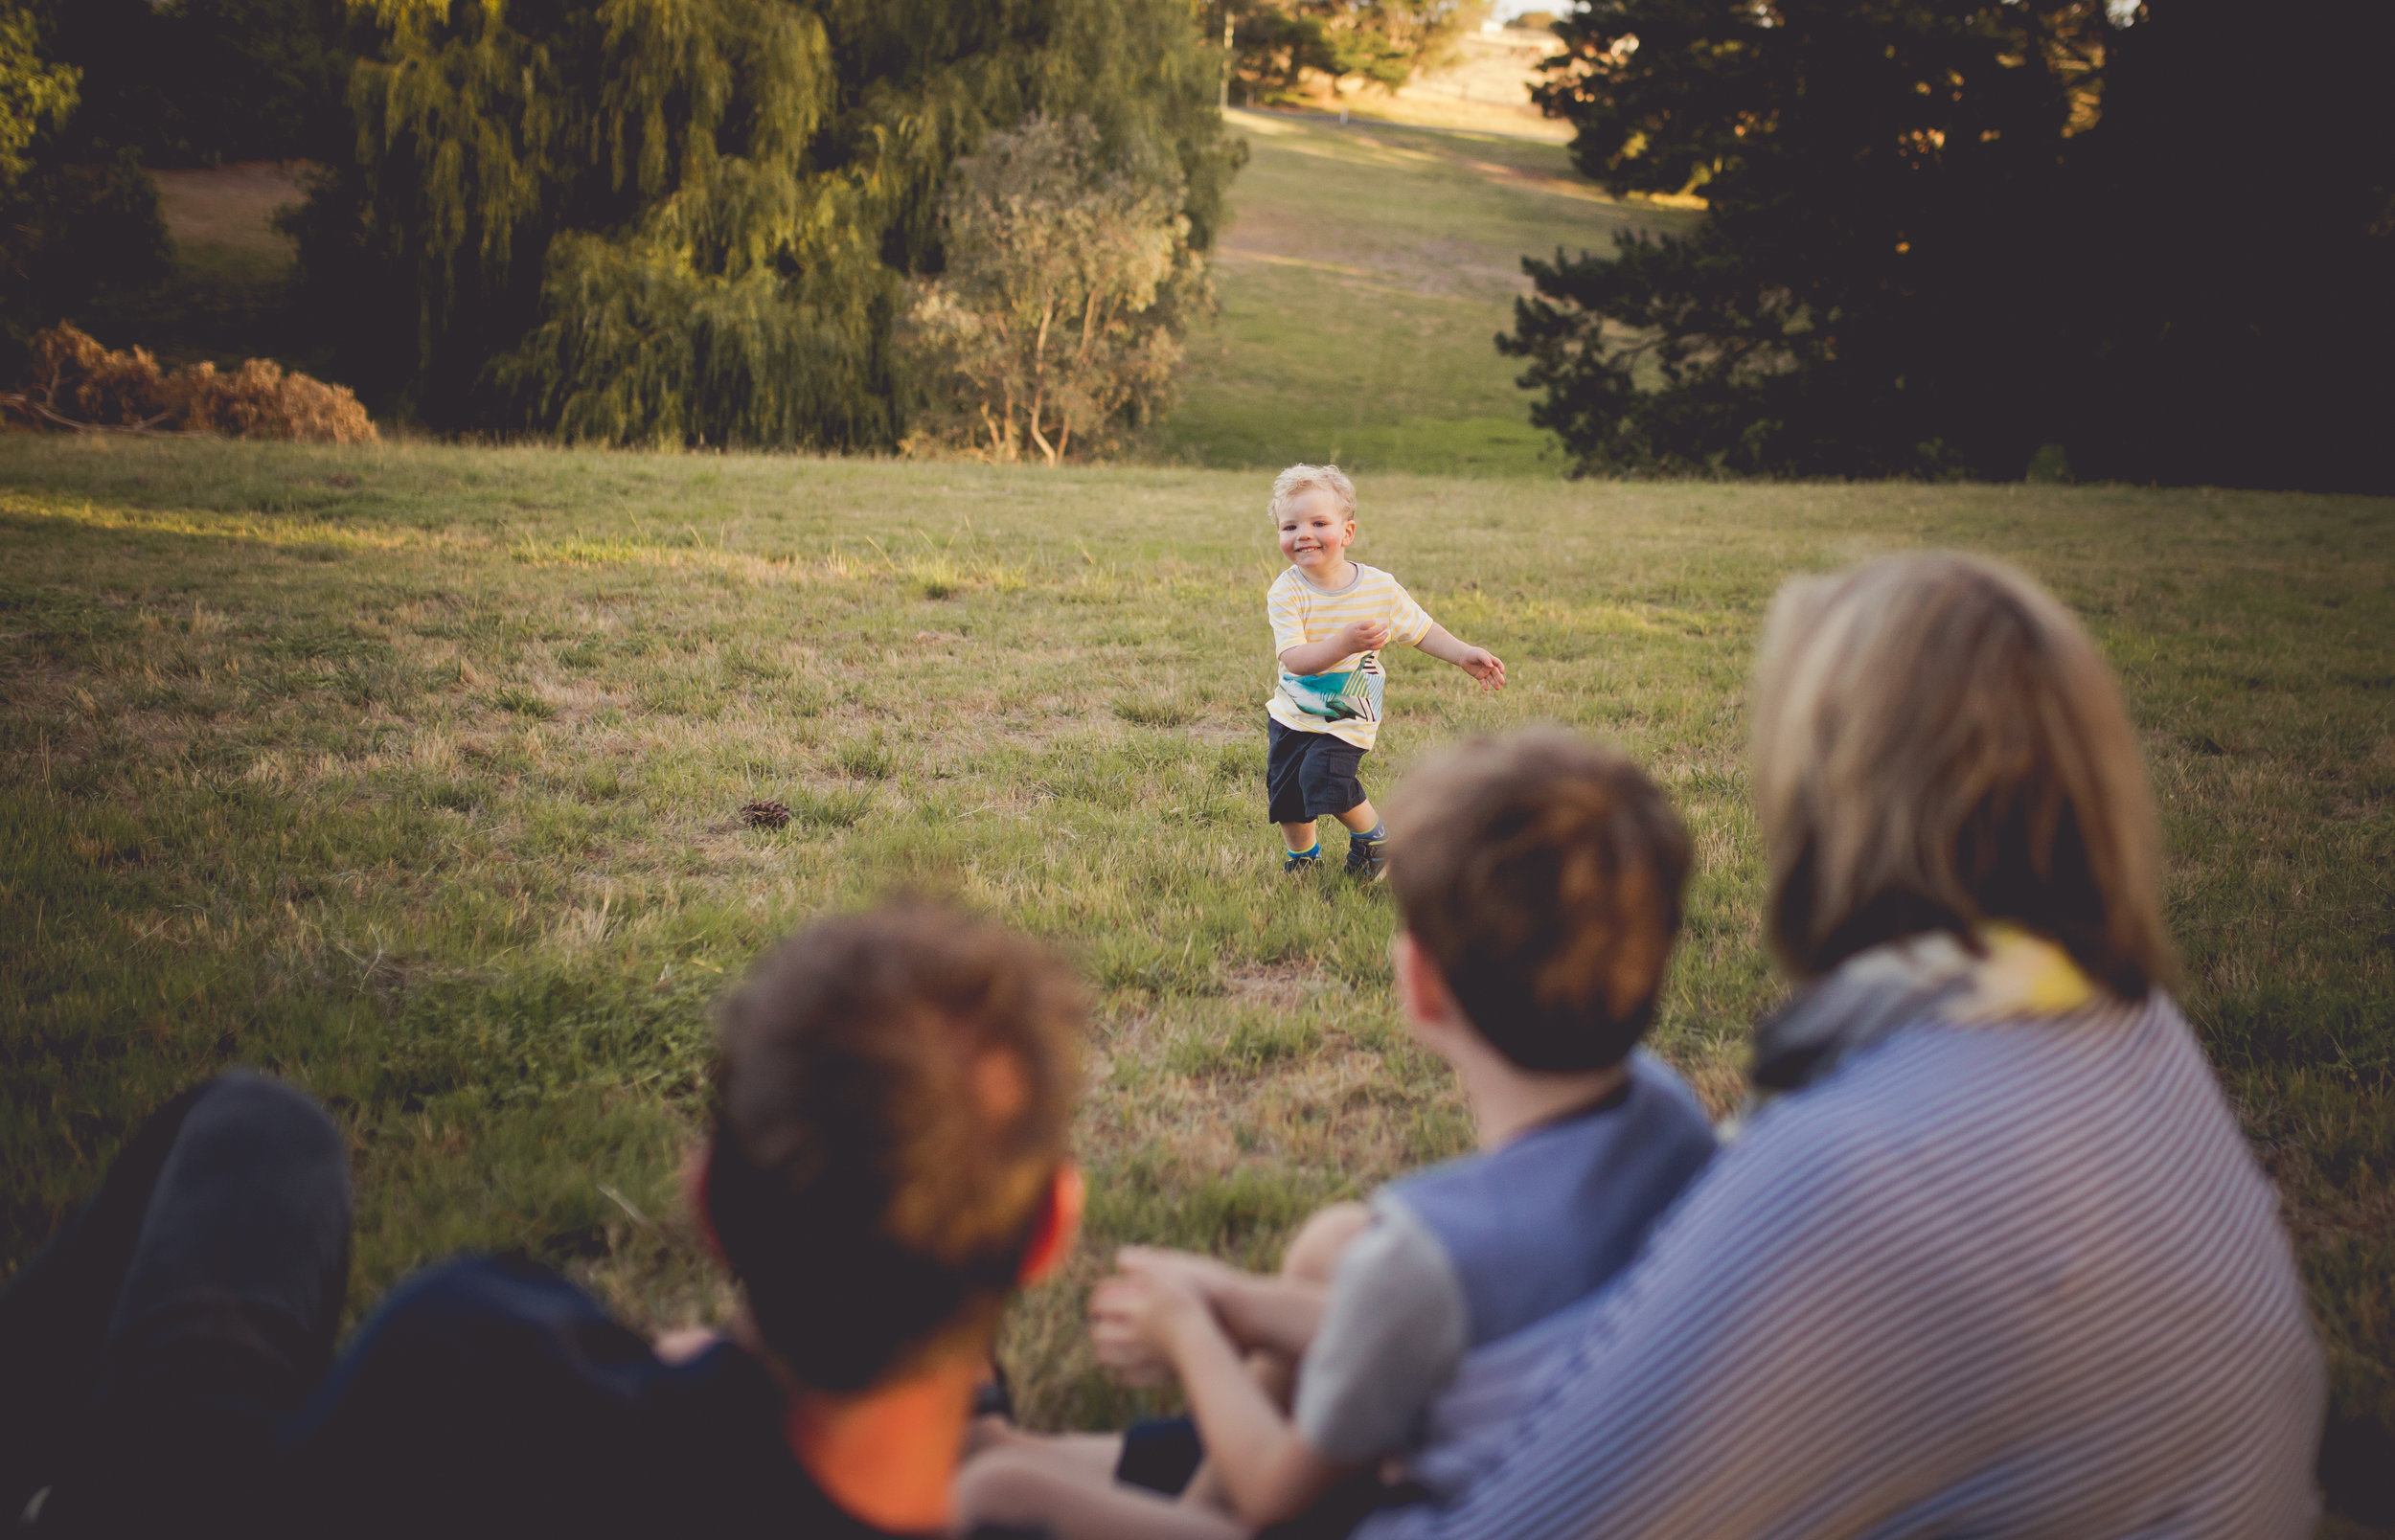 Standard Yearly Session - $375 - Family session on location around Geelong or the Bellarine. 30 edited digital files via downloadSave over $400